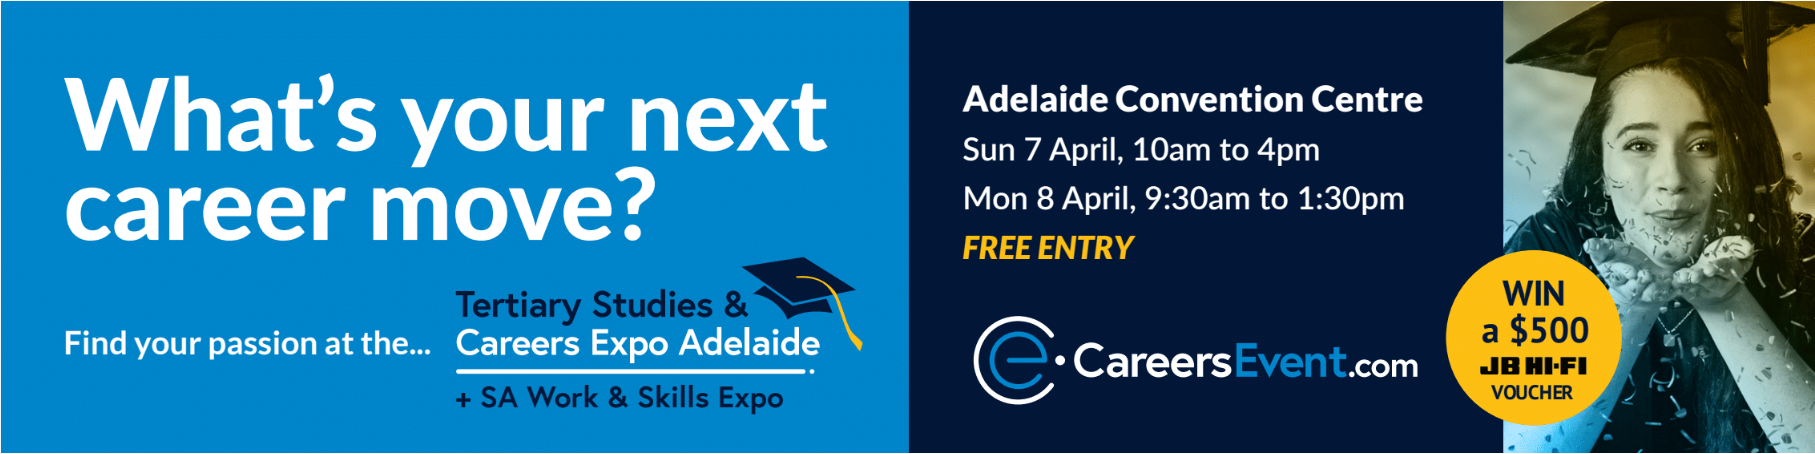 Tertiary Studies and Careers Expo, Adelaide (TSCEA)